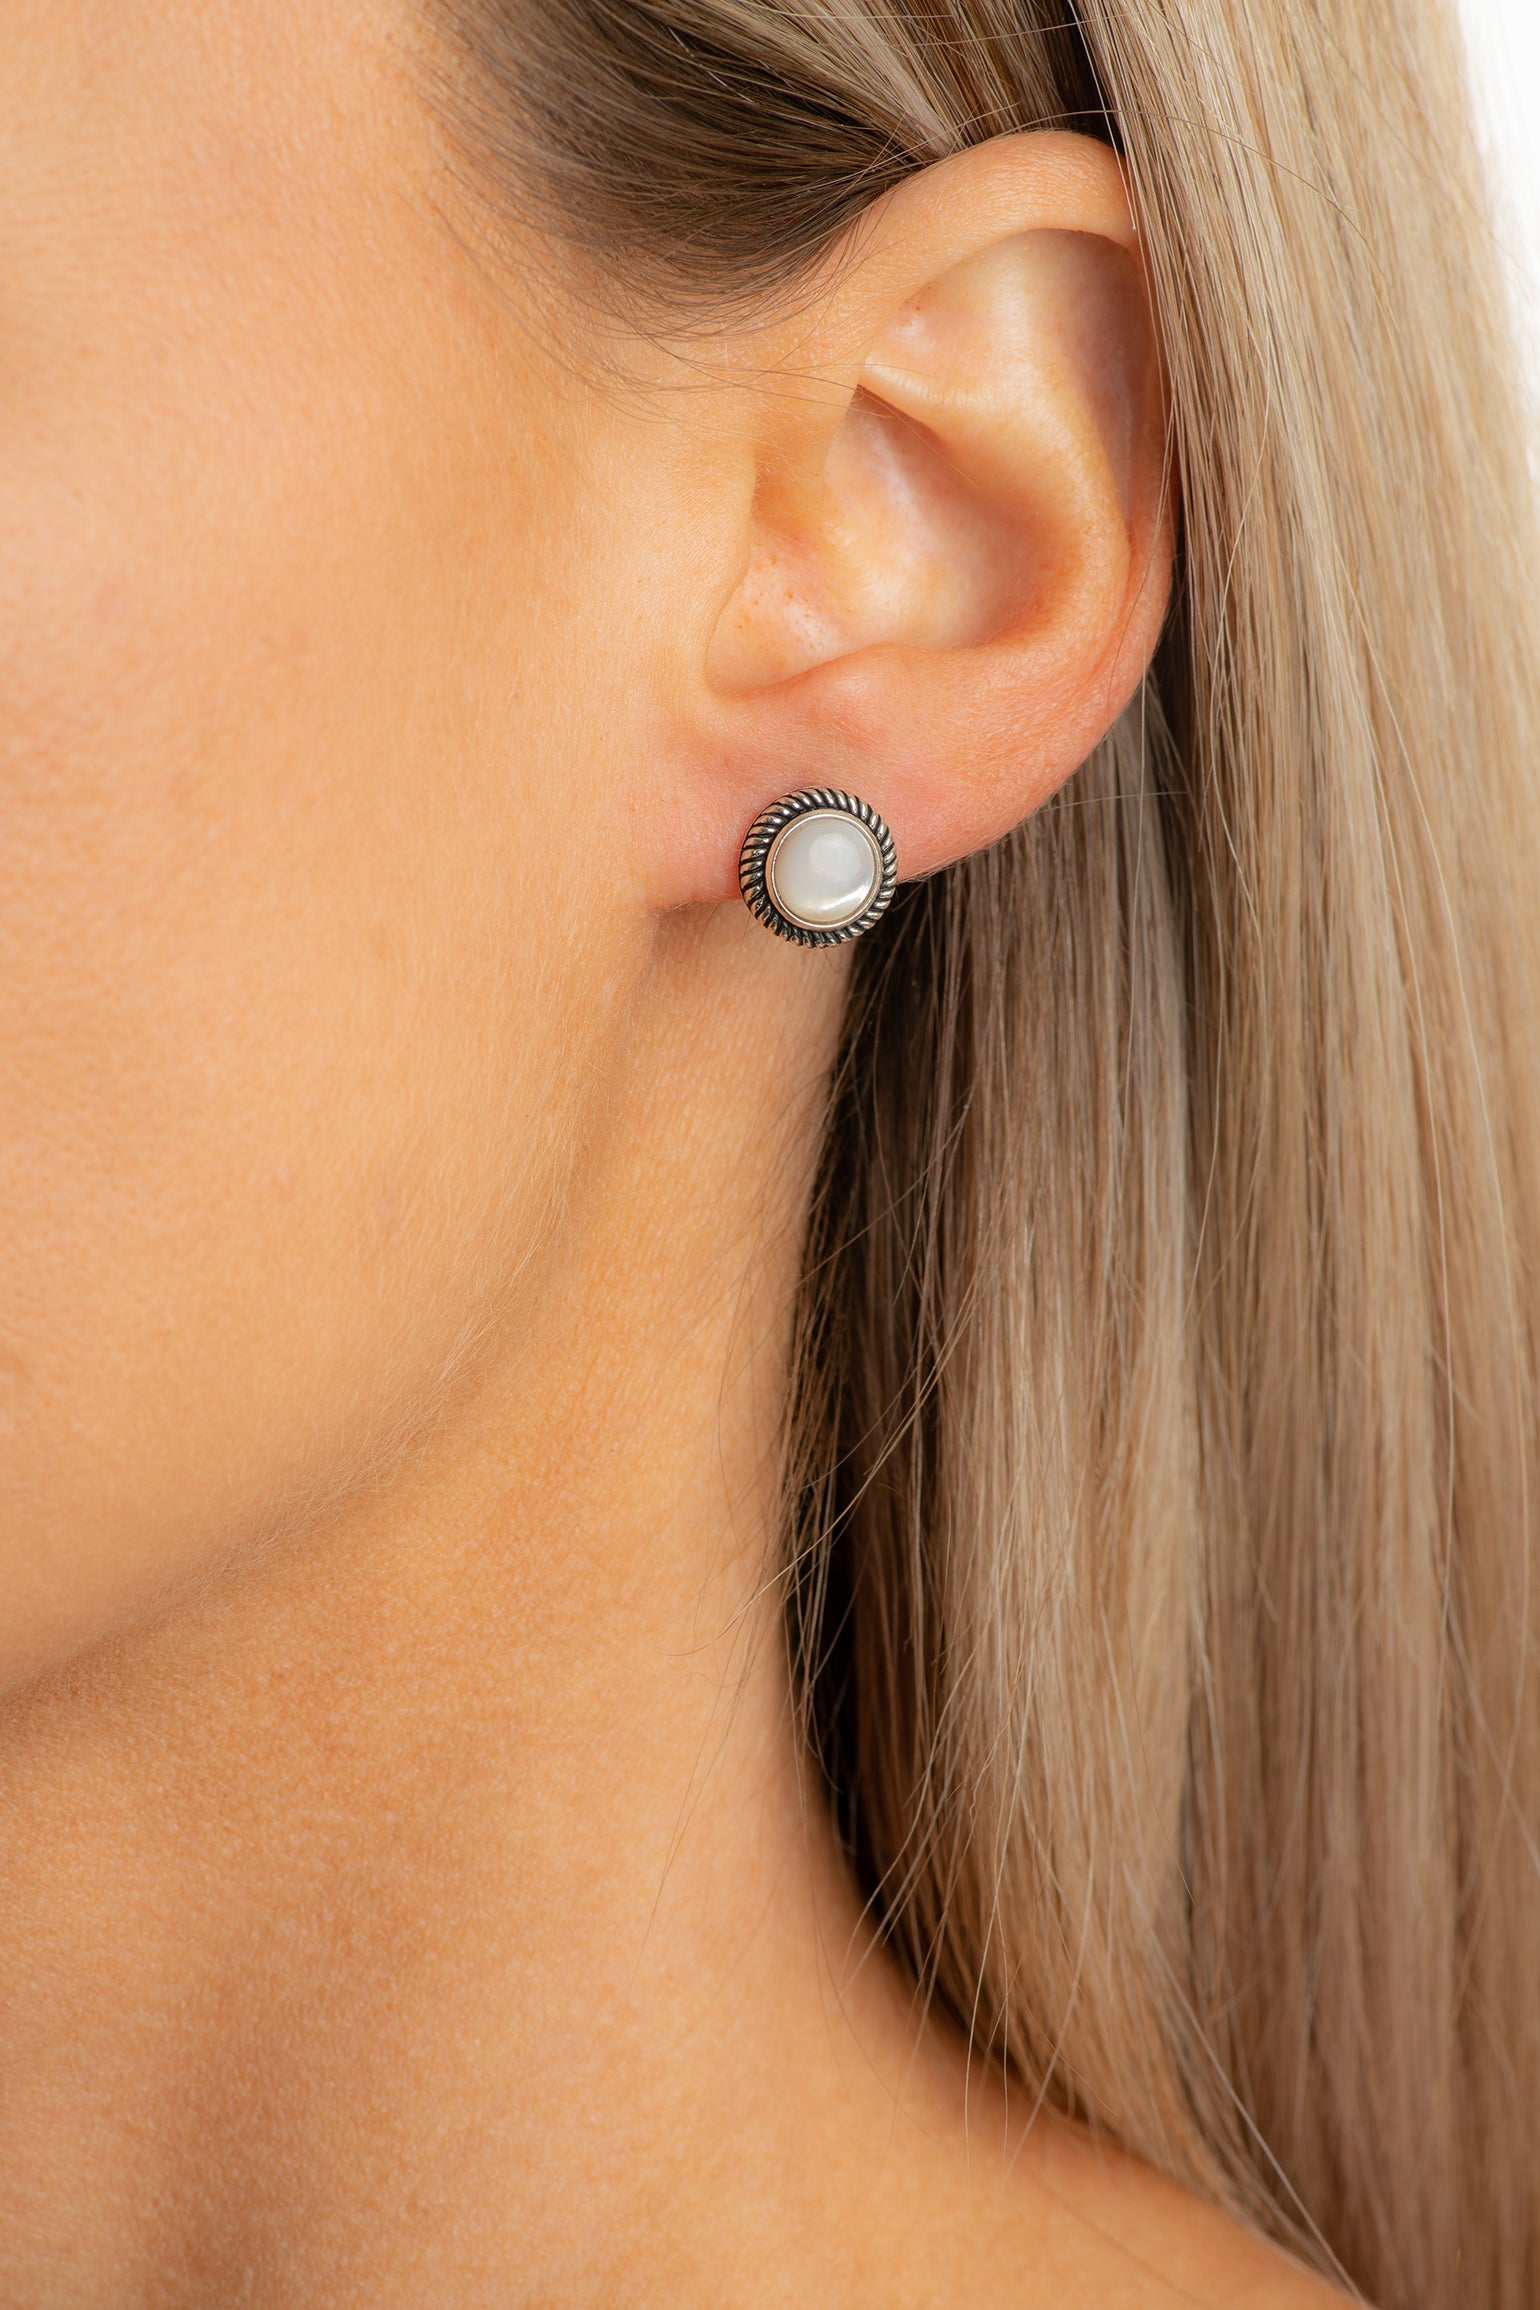 Sterling silver round earrings with mother of pearl